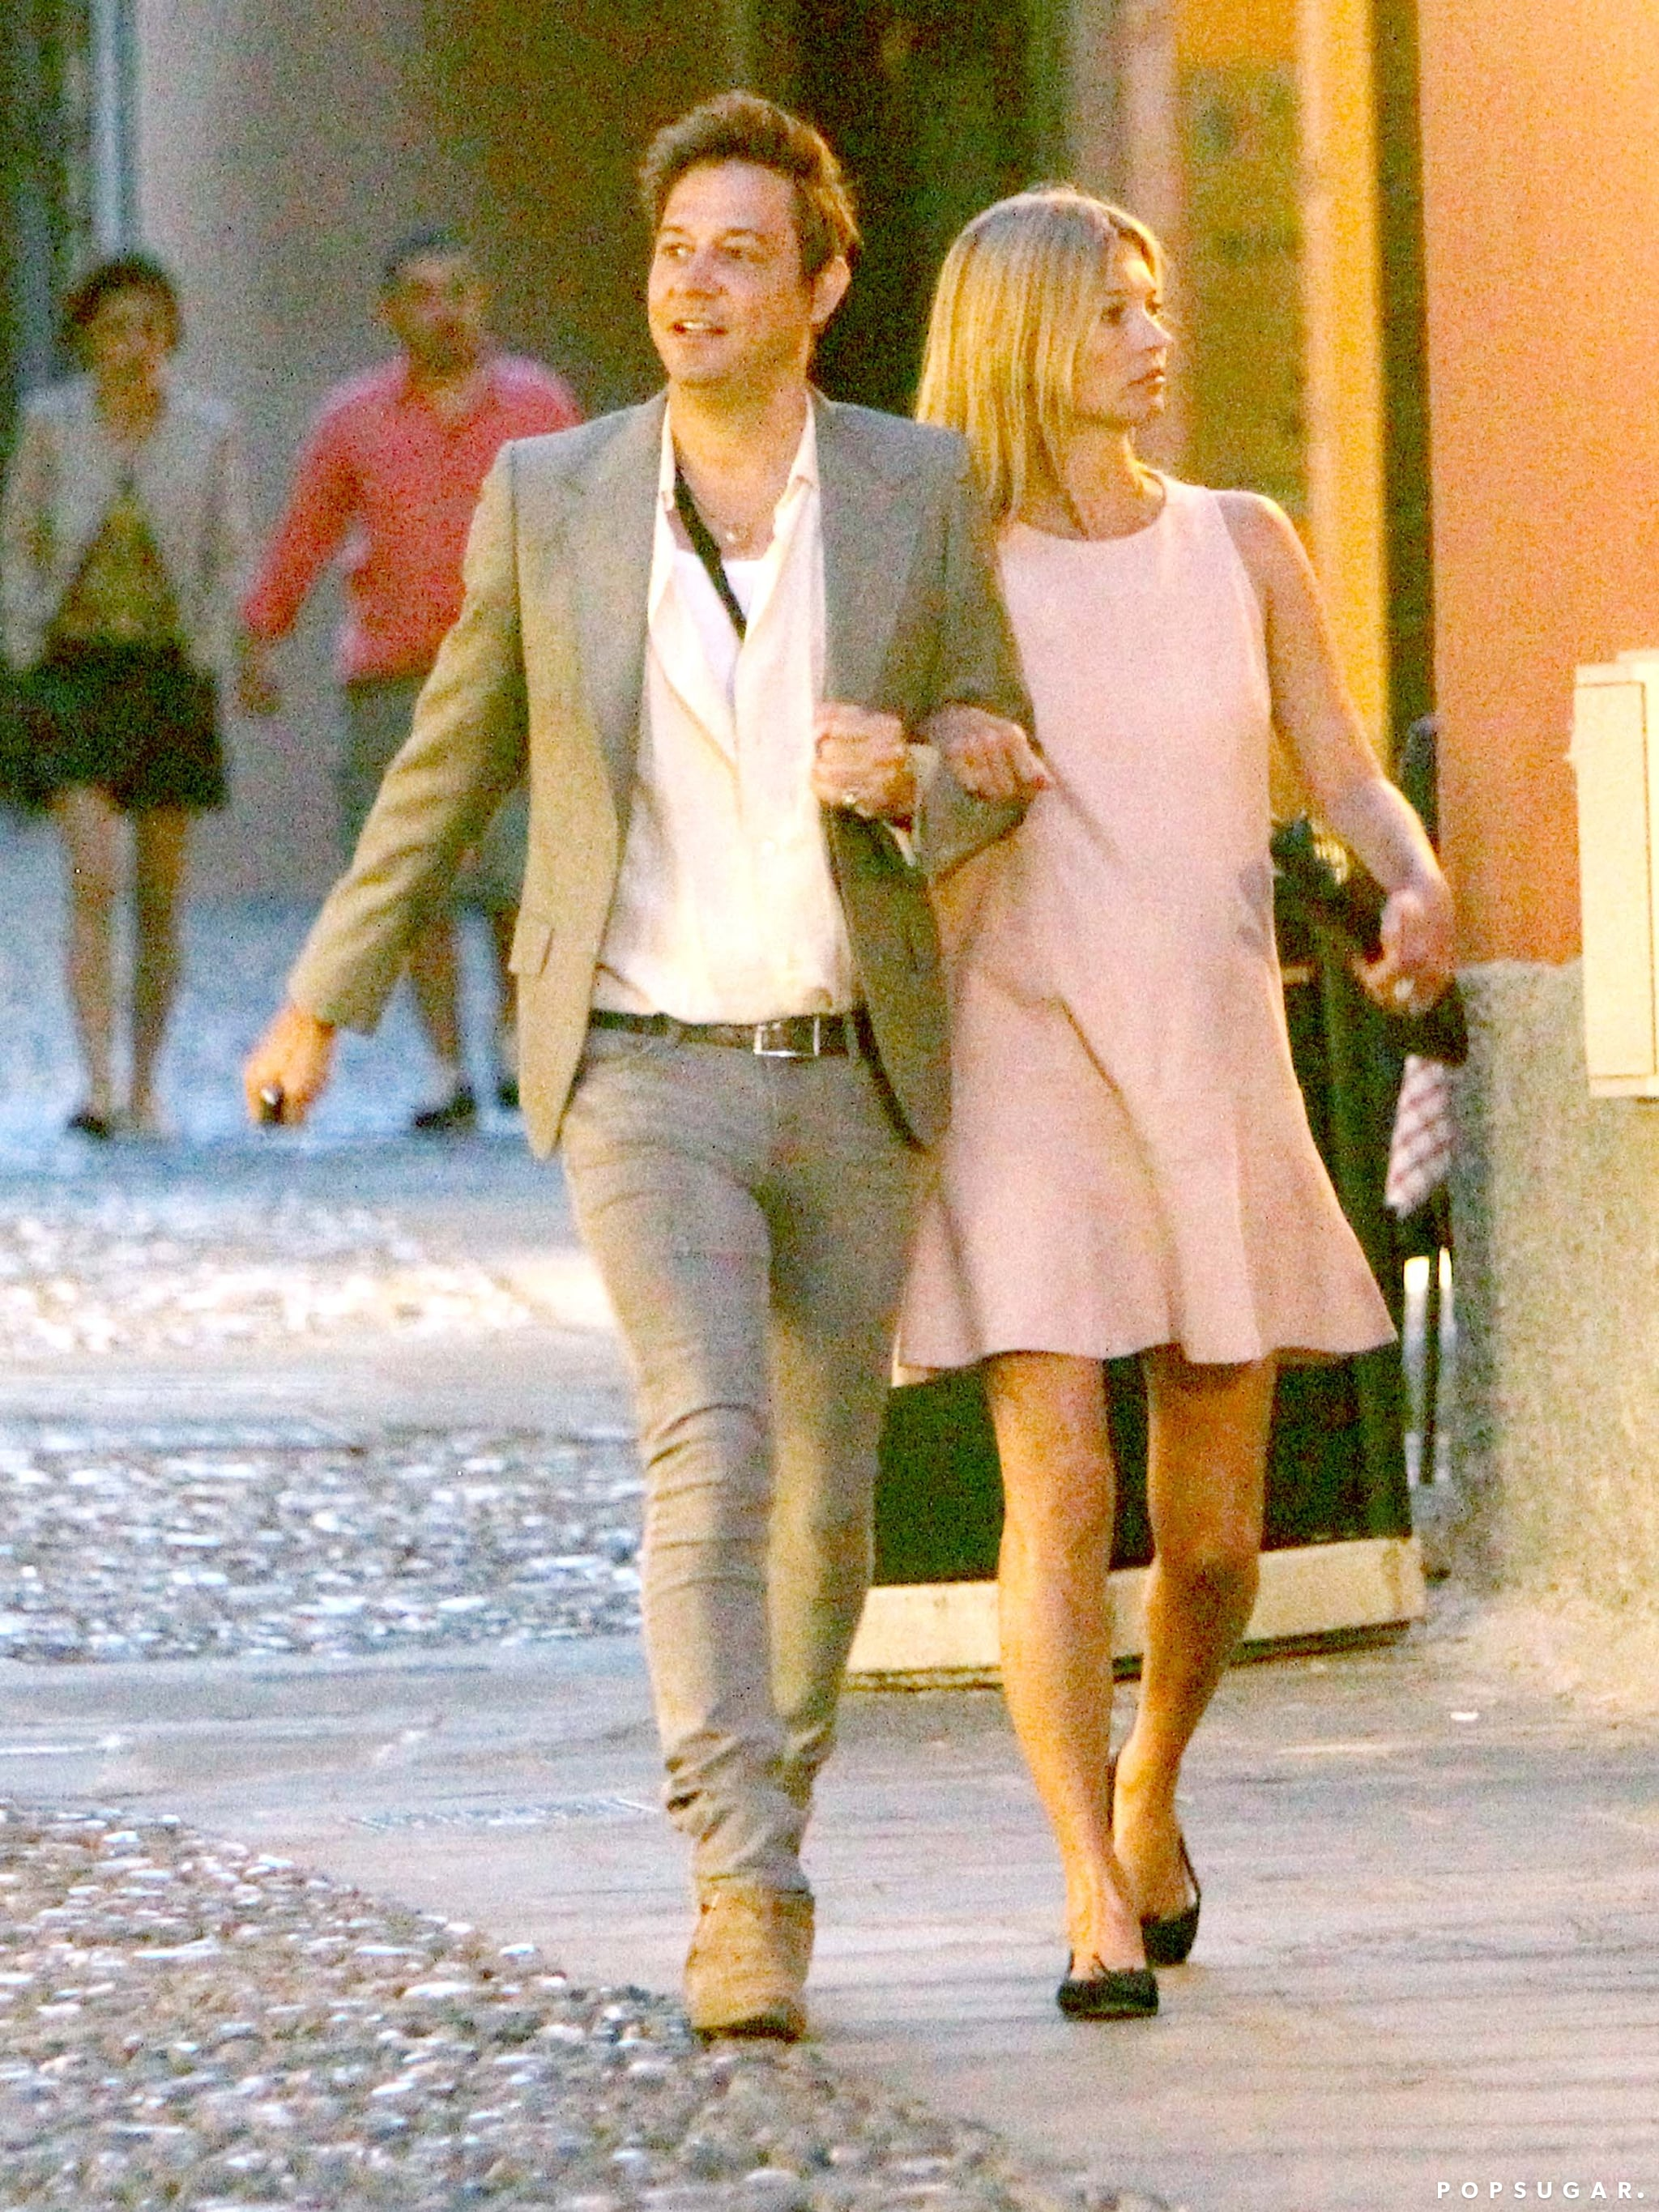 Kate Moss and Jamie Hince strolled to dinner together in Portofino, Italy.